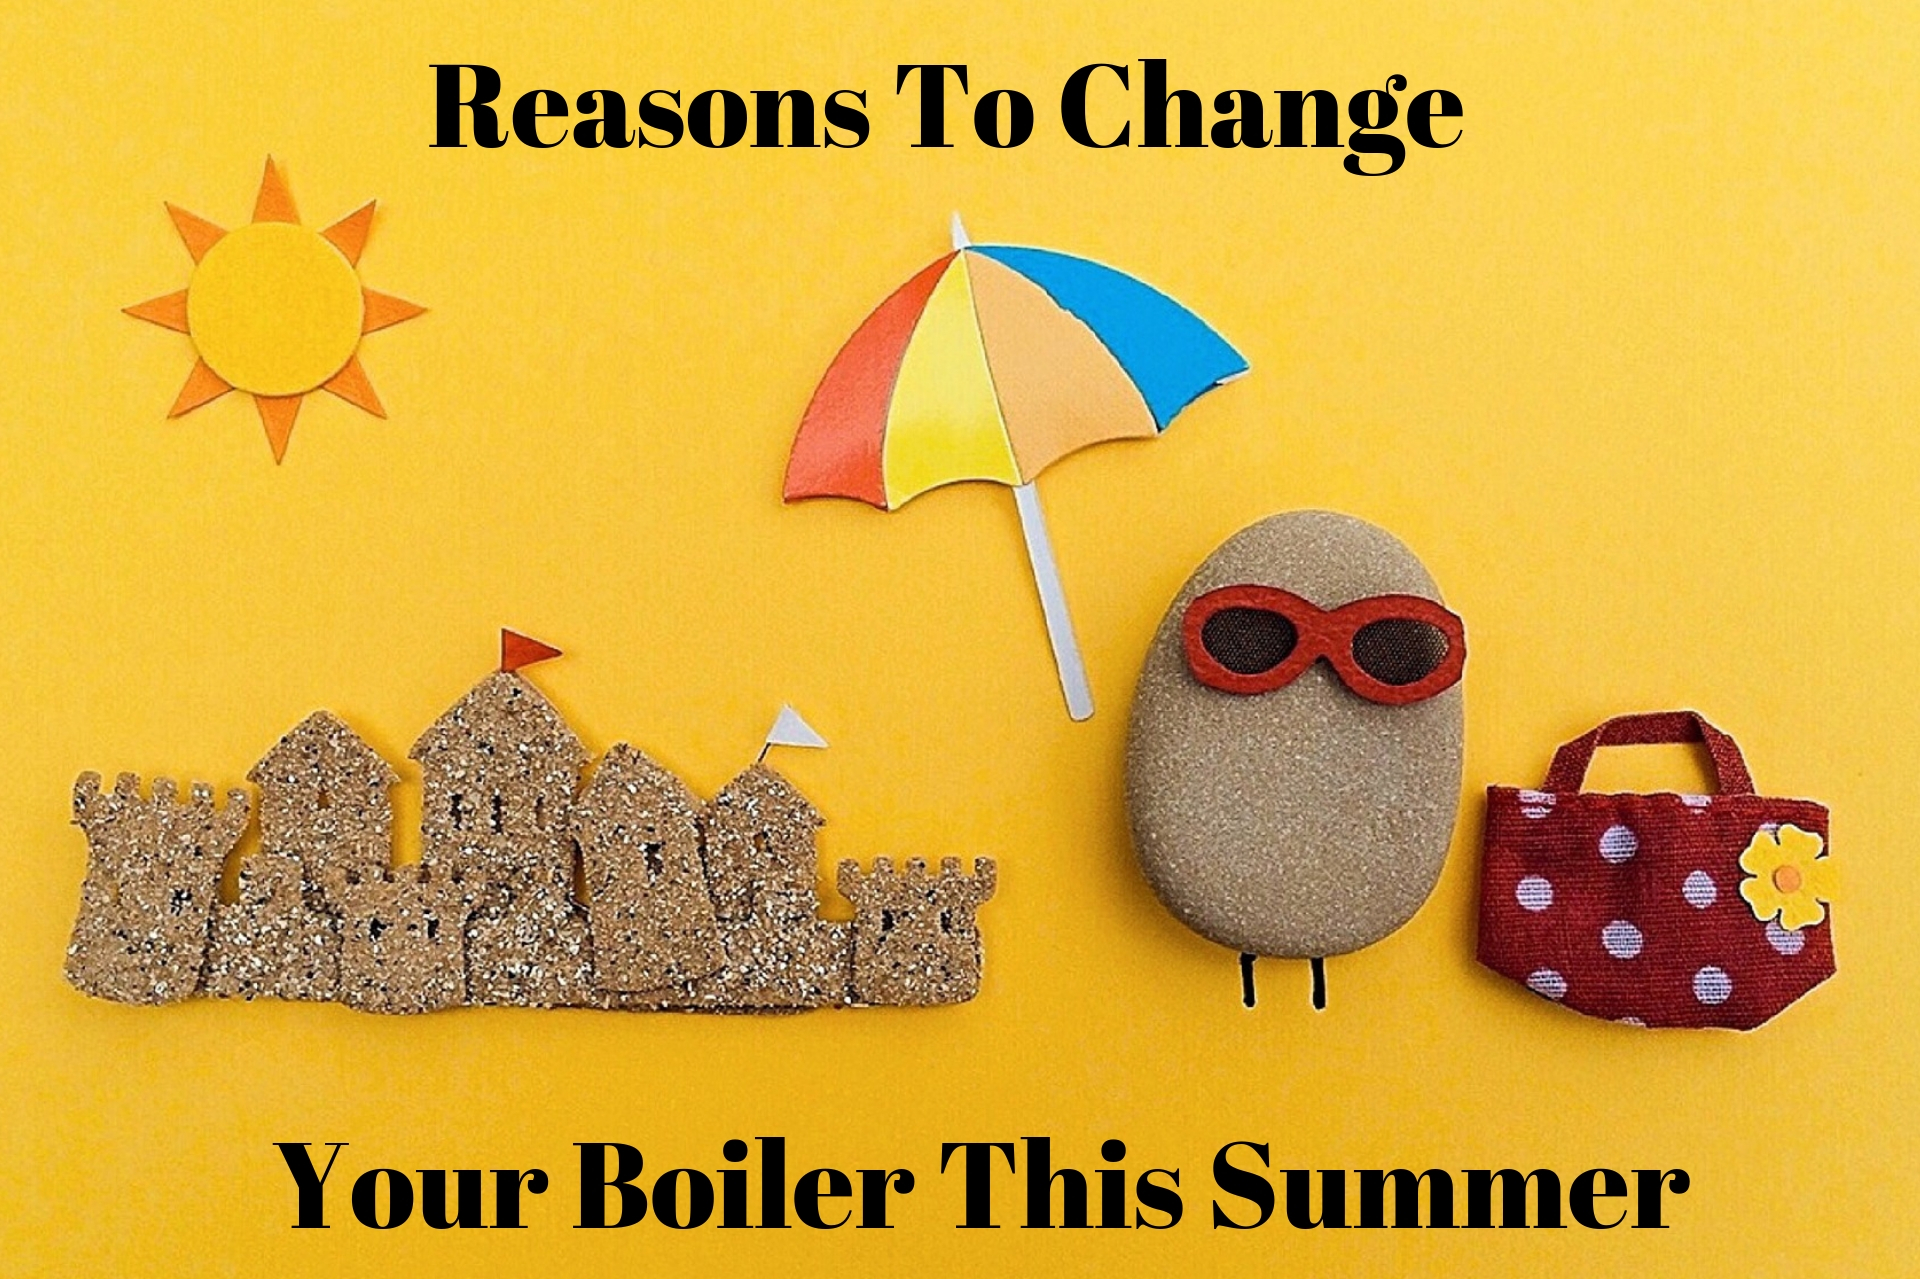 change boiler this summer